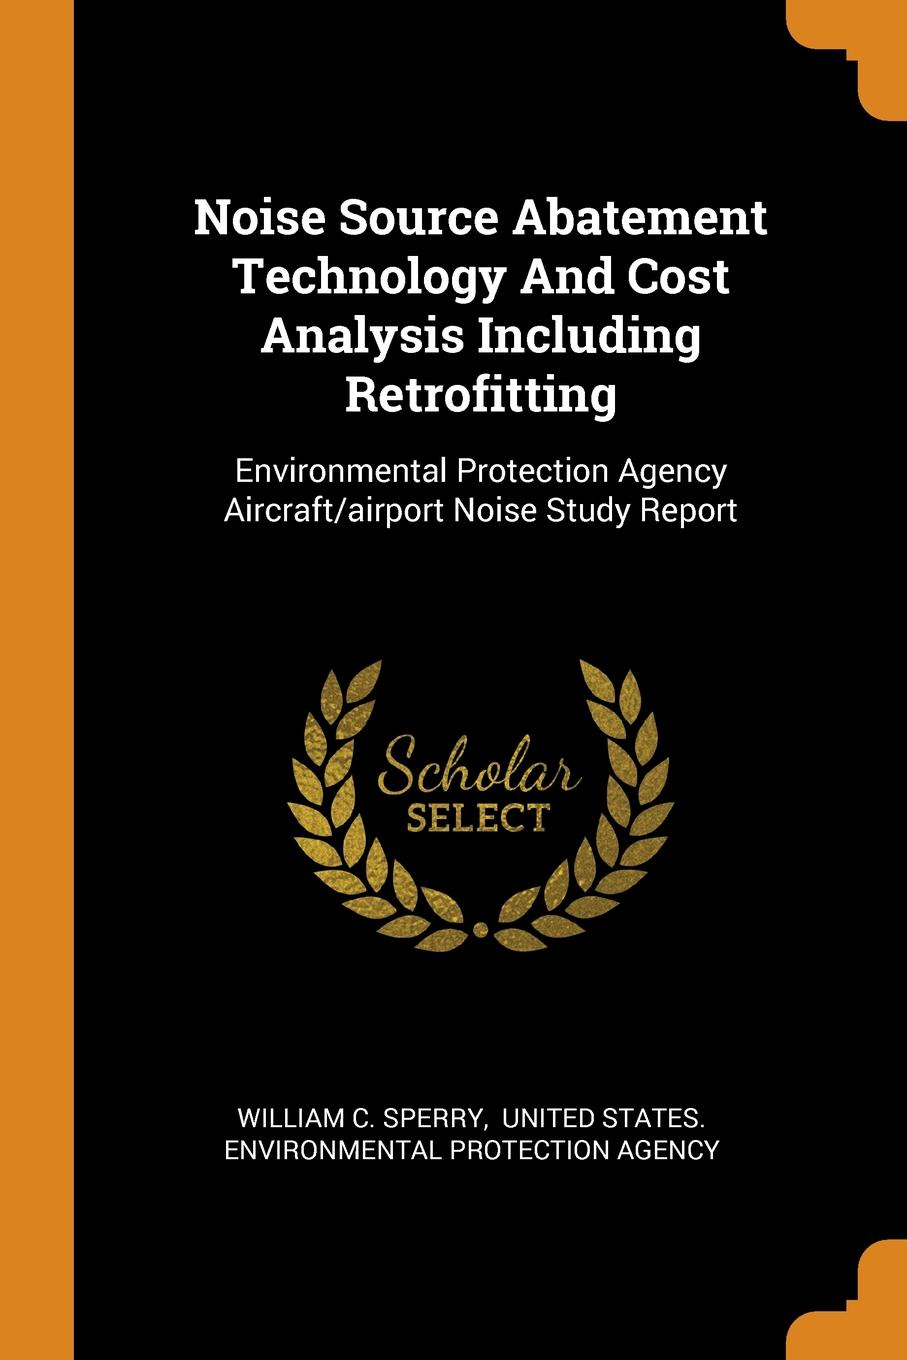 William C. Sperry Noise Source Abatement Technology And Cost Analysis Including Retrofitting. Environmental Protection Agency Aircraft/airport Noise Study Report